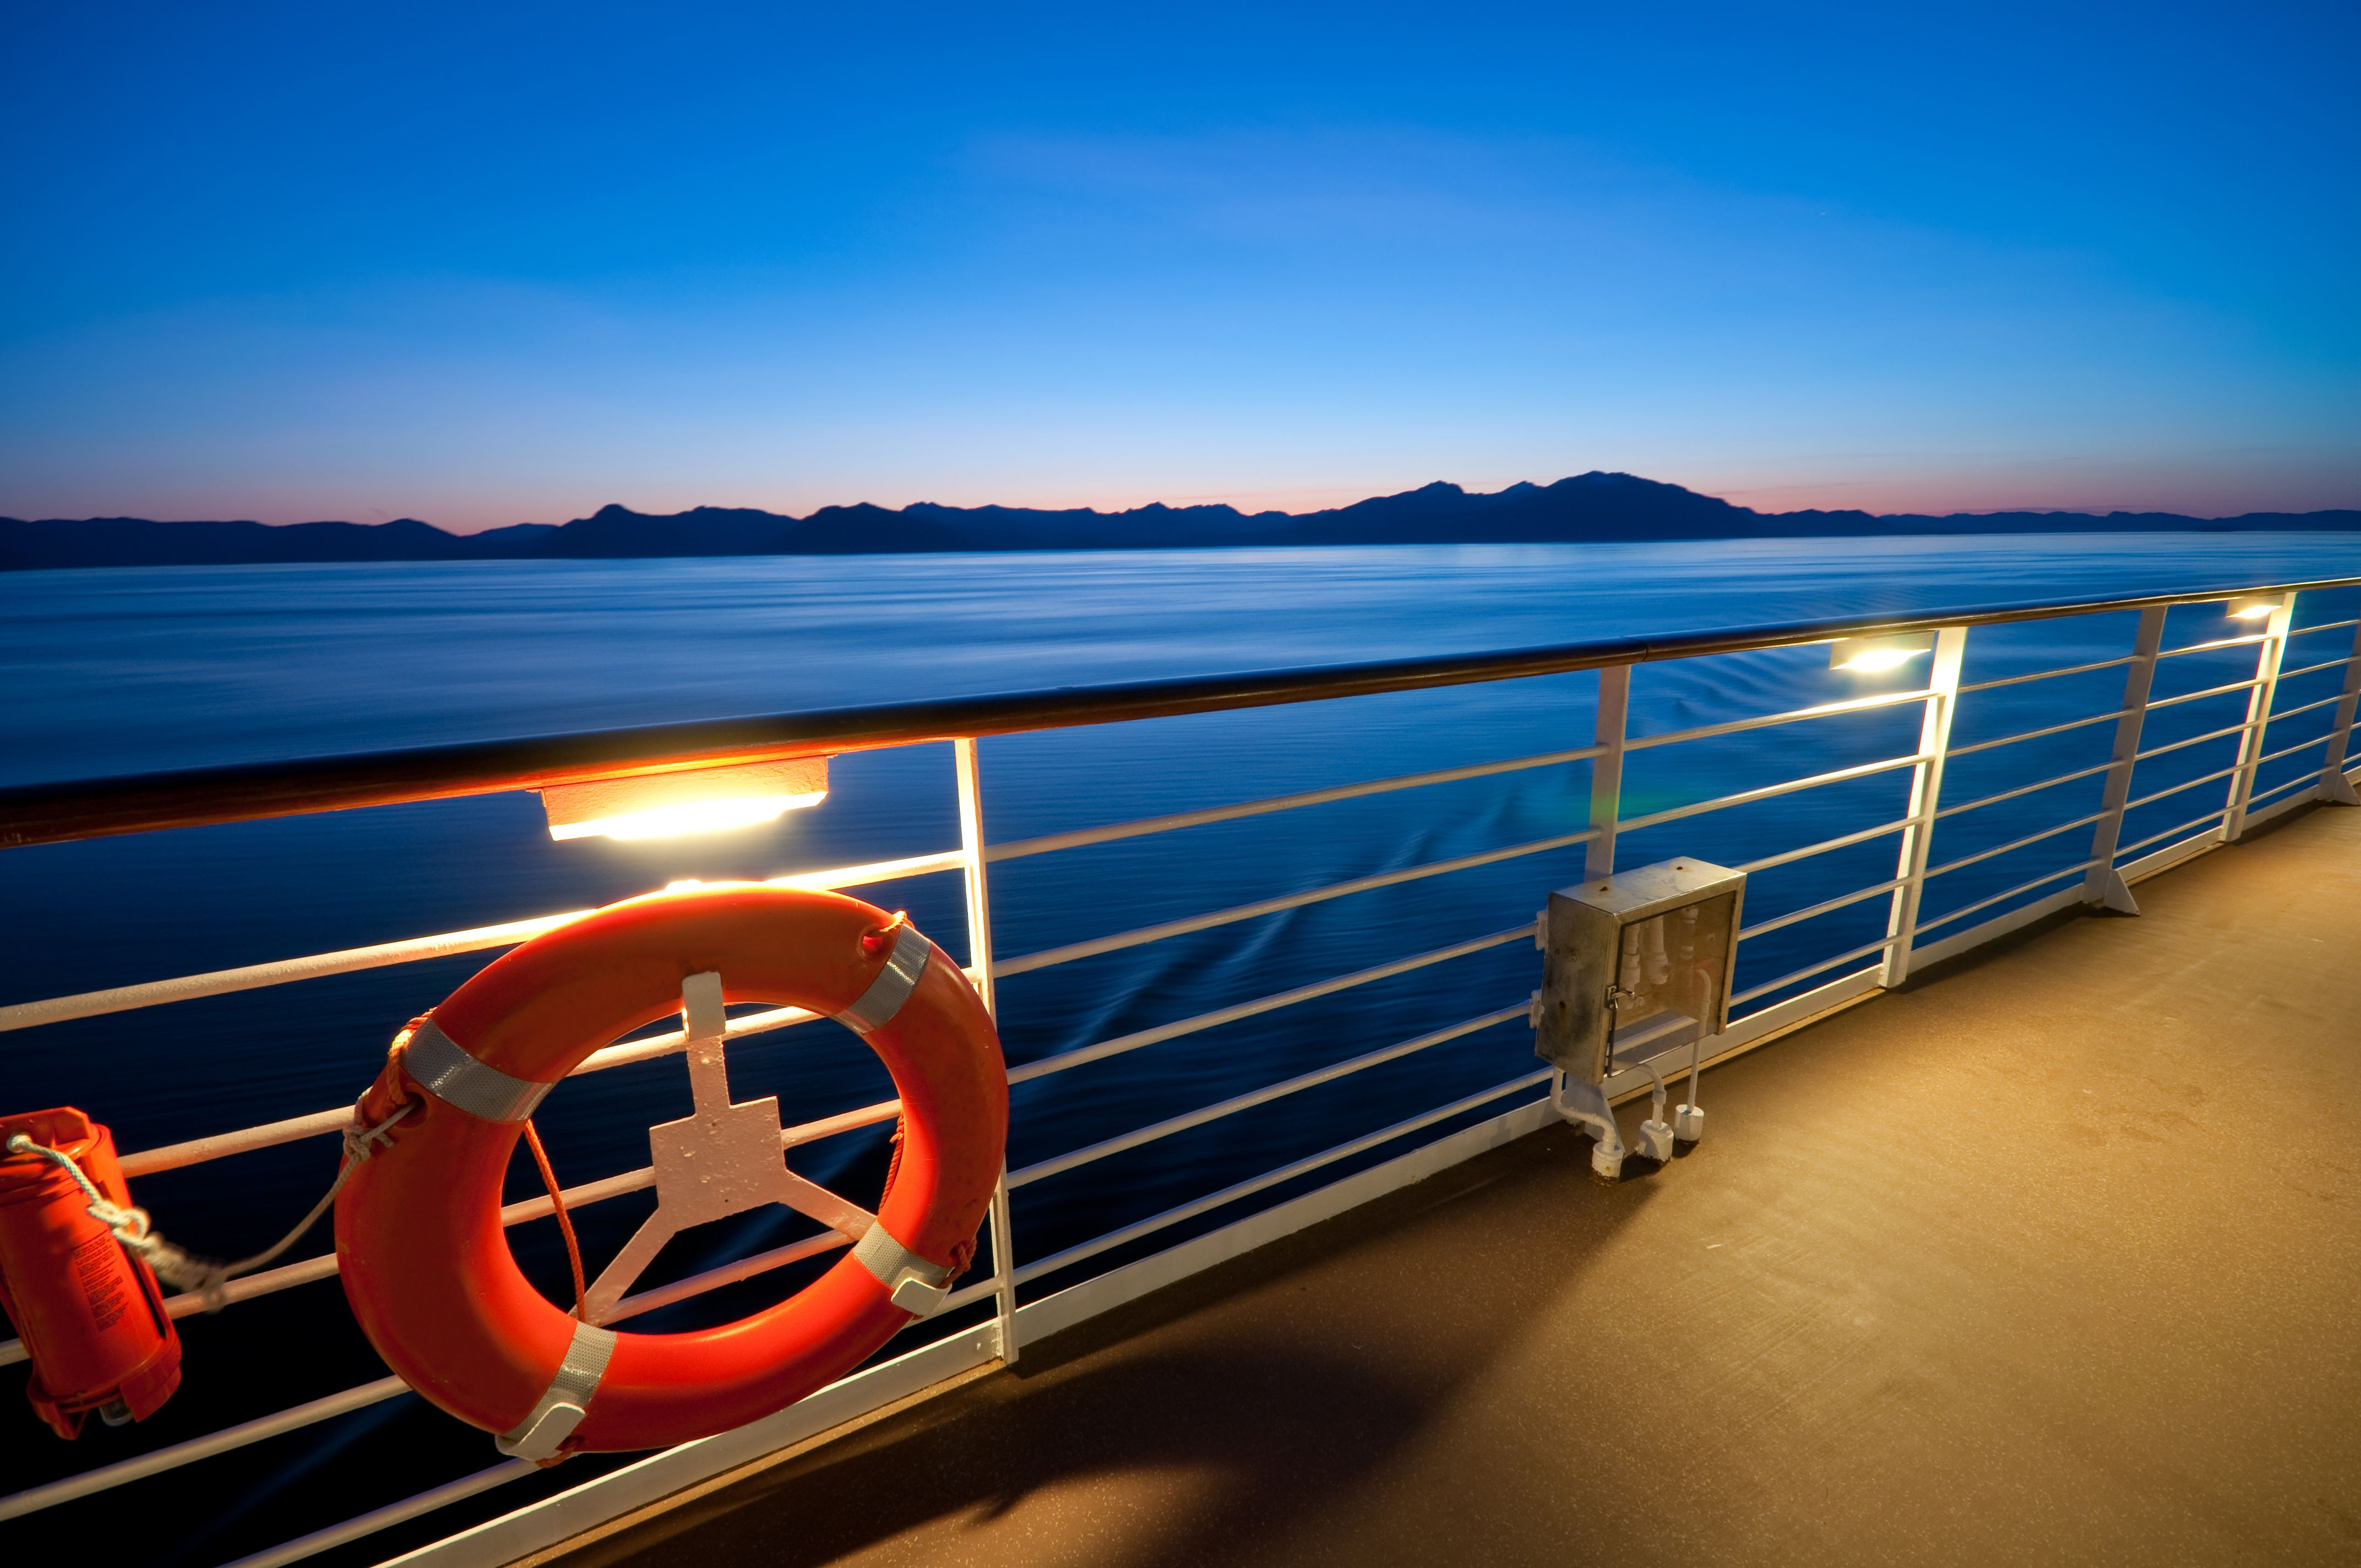 imagine being on this cruise ship deck this amazing view do imagine being on this cruise ship deck this amazing view do you have any